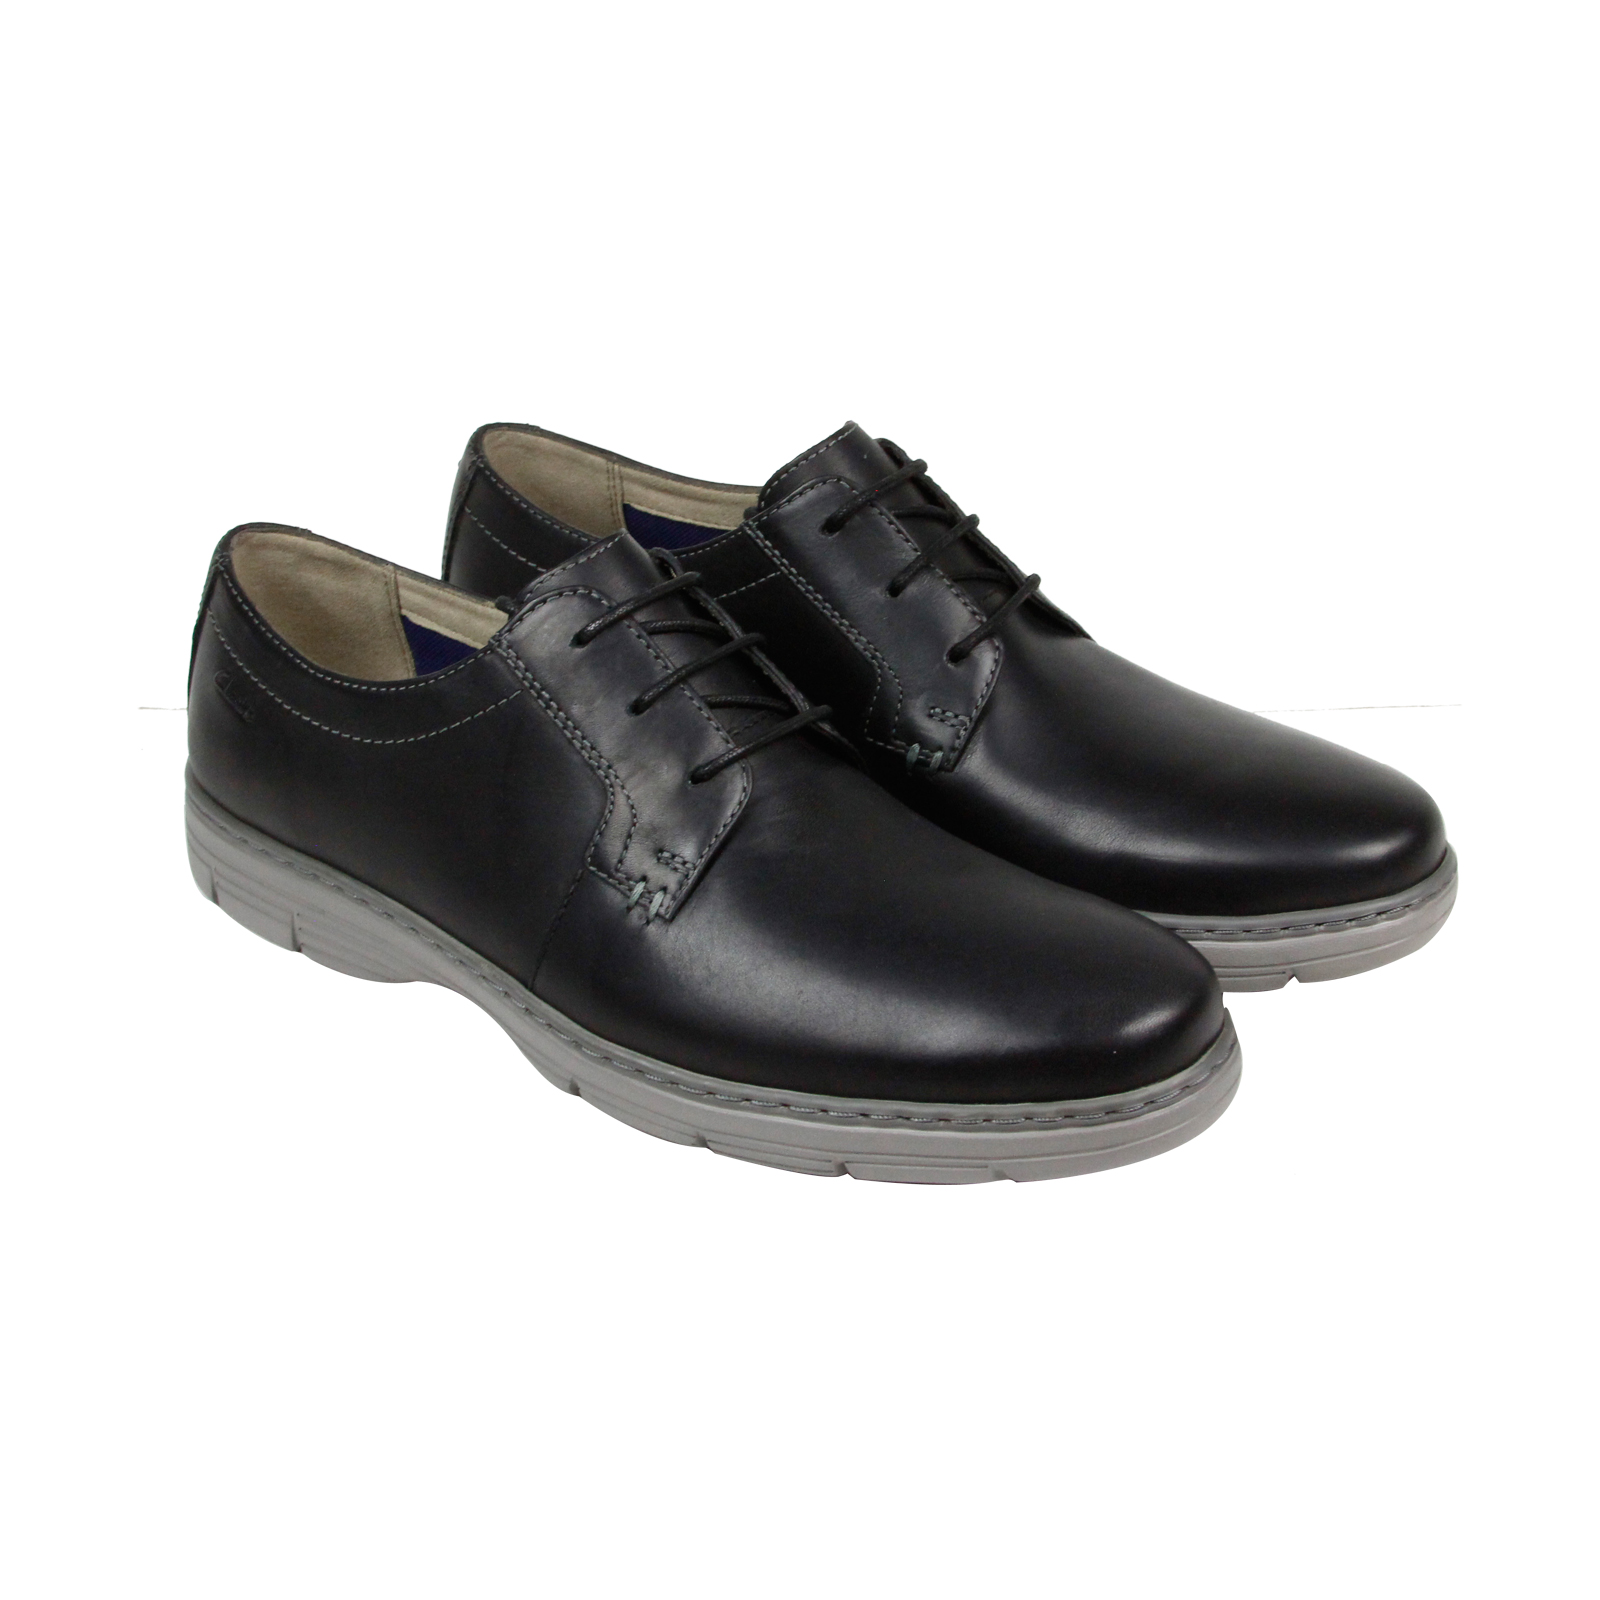 clarks watts pace mens black leather casual dress lace up